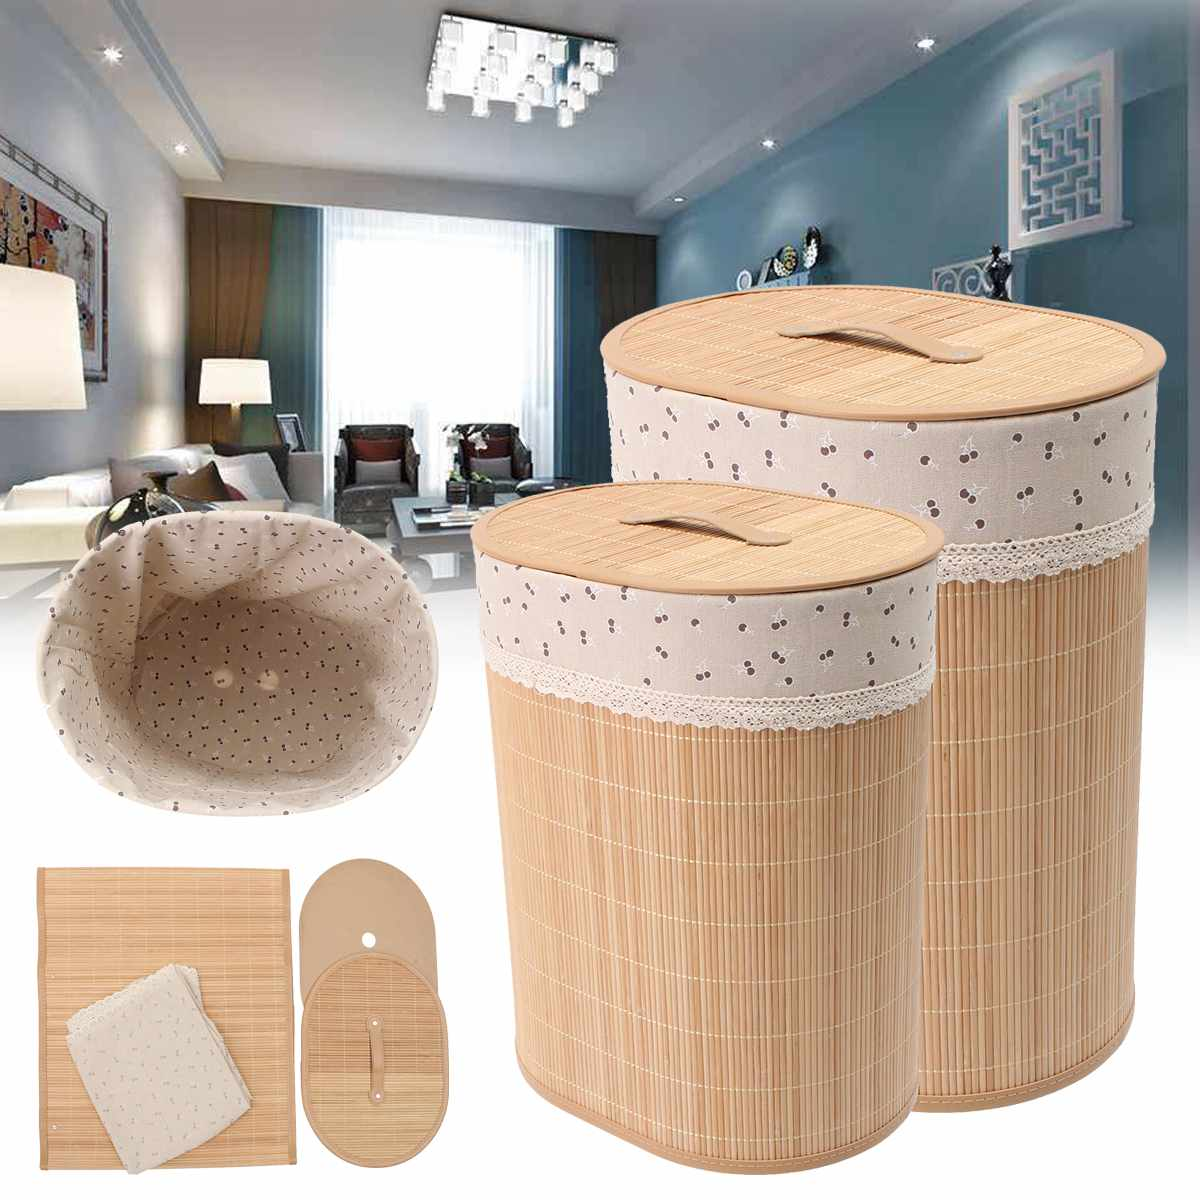 Bamboo Laundry Basket Made of Bamboo And Cloth Material For Storing Cloth